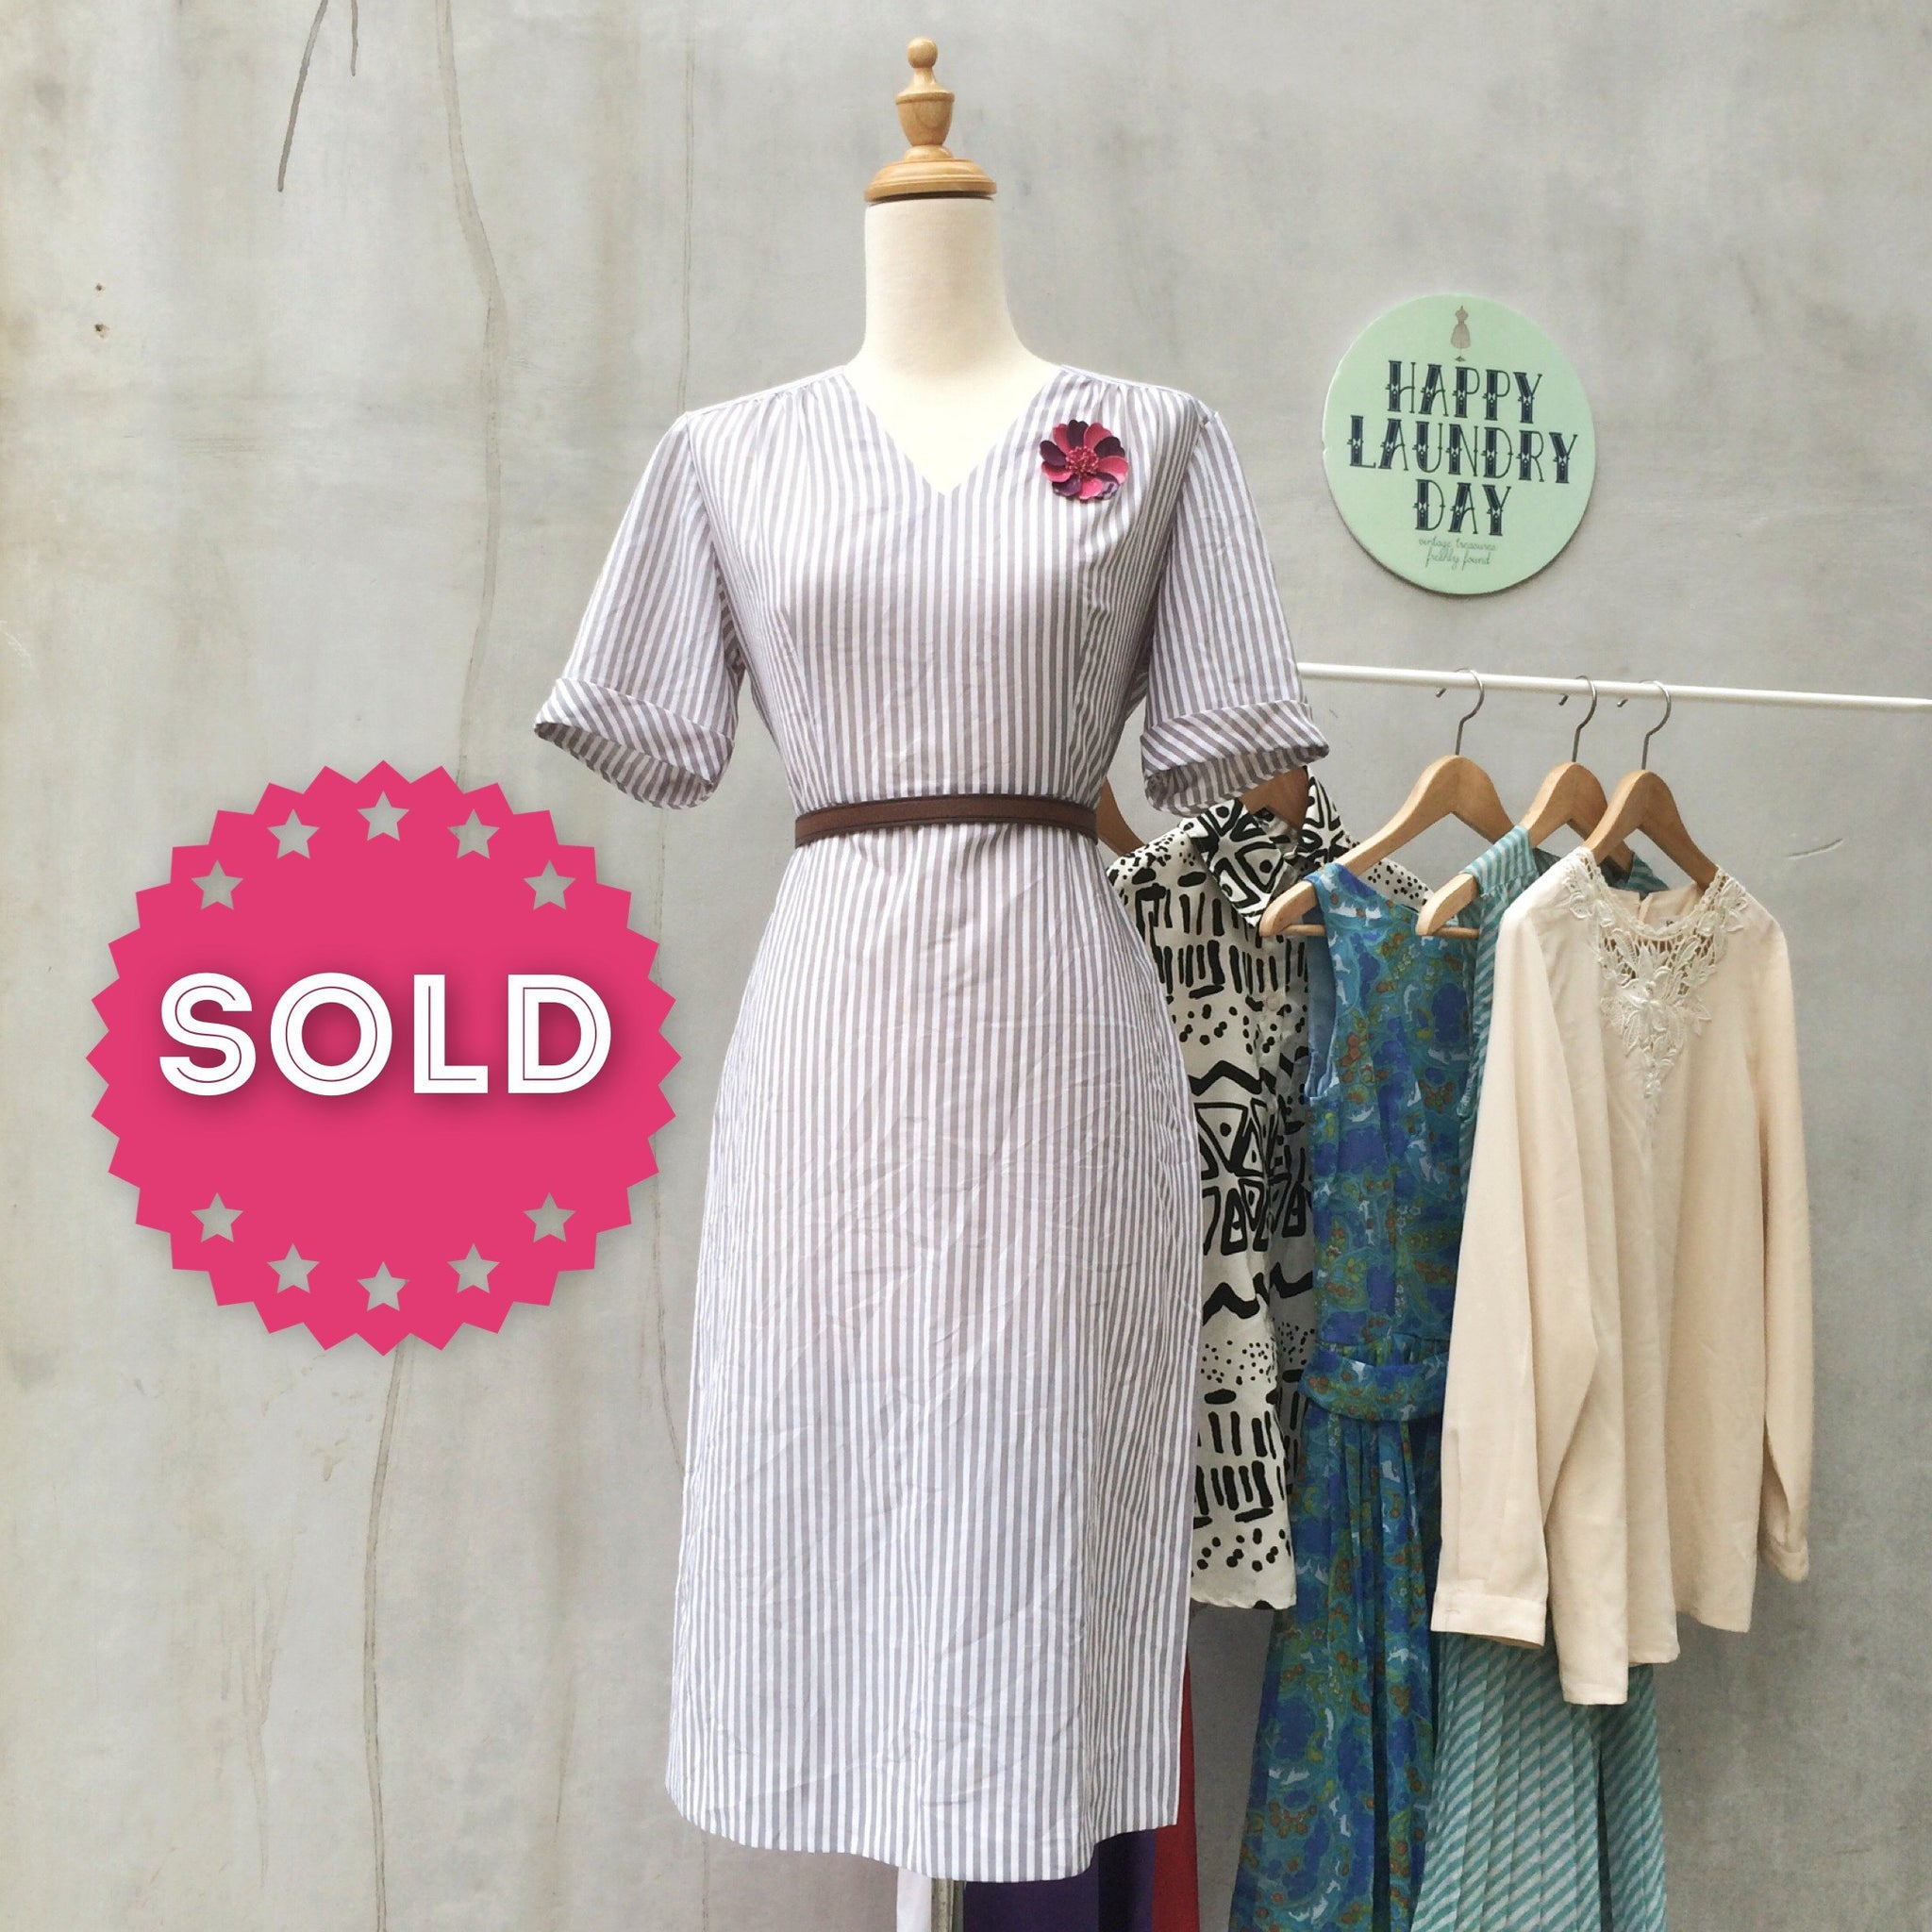 Strip-ey Office Happy ! | Vintage 1940s simple shift dress in Grey white Vertical stripes